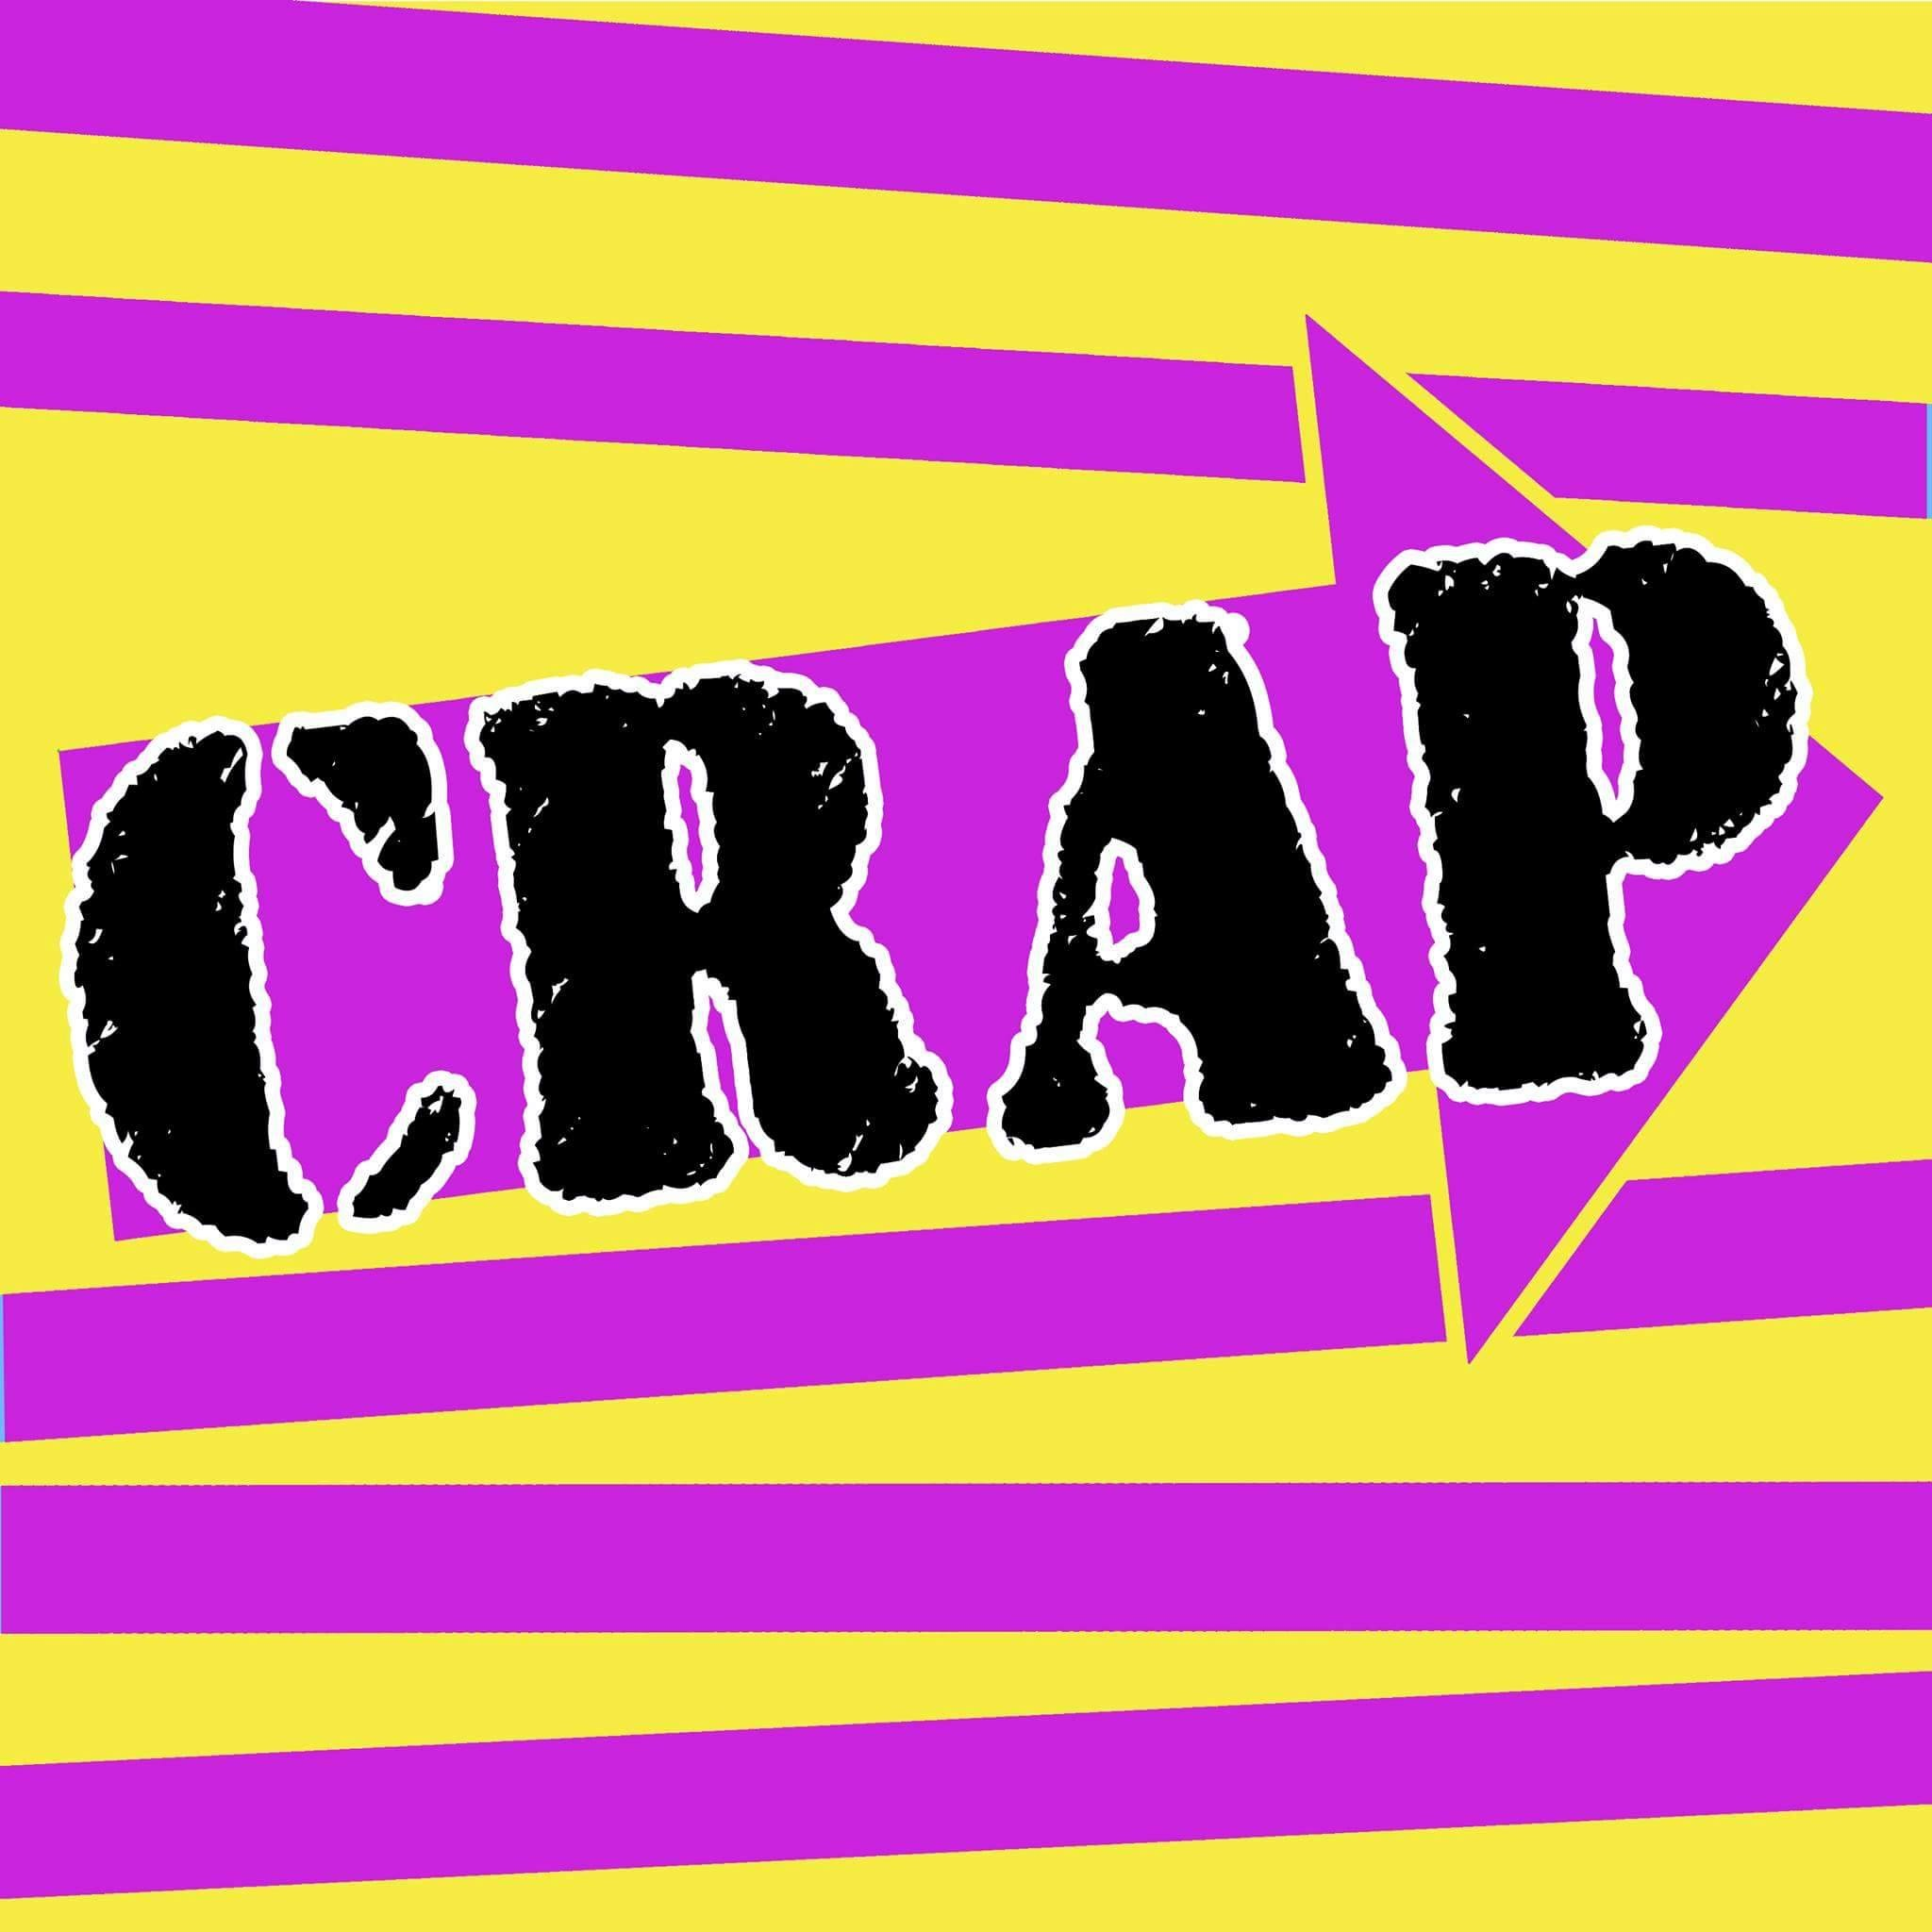 Crap 77 - LP - Nov 2017